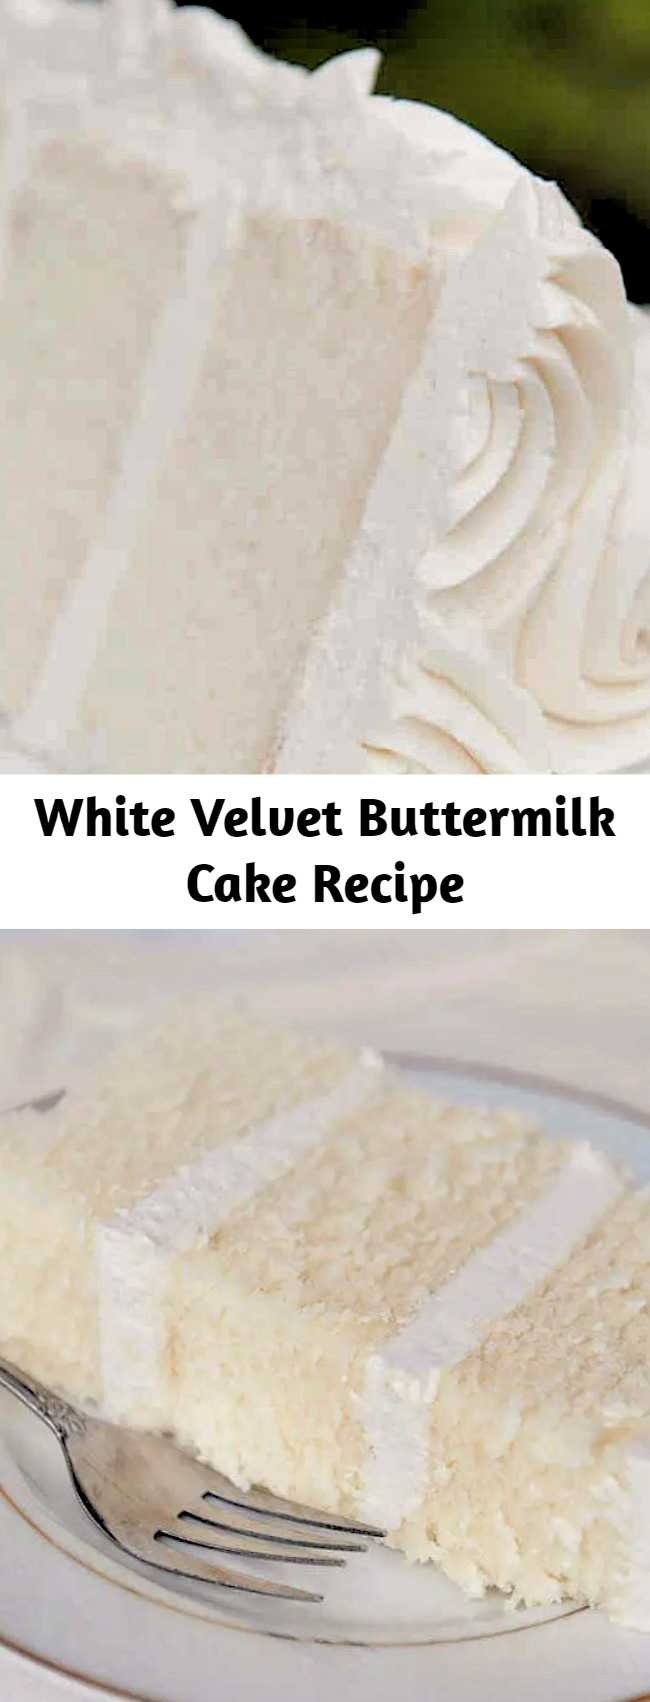 """White velvet cake gets it's flavor and velvety texture from buttermilk. A moist, tender cake that is great for any special occasion. This recipe makes two 8"""" round cakes about 2"""" tall. Bake at 335F for 30-35 minutes until a toothpick comes out cleanly."""